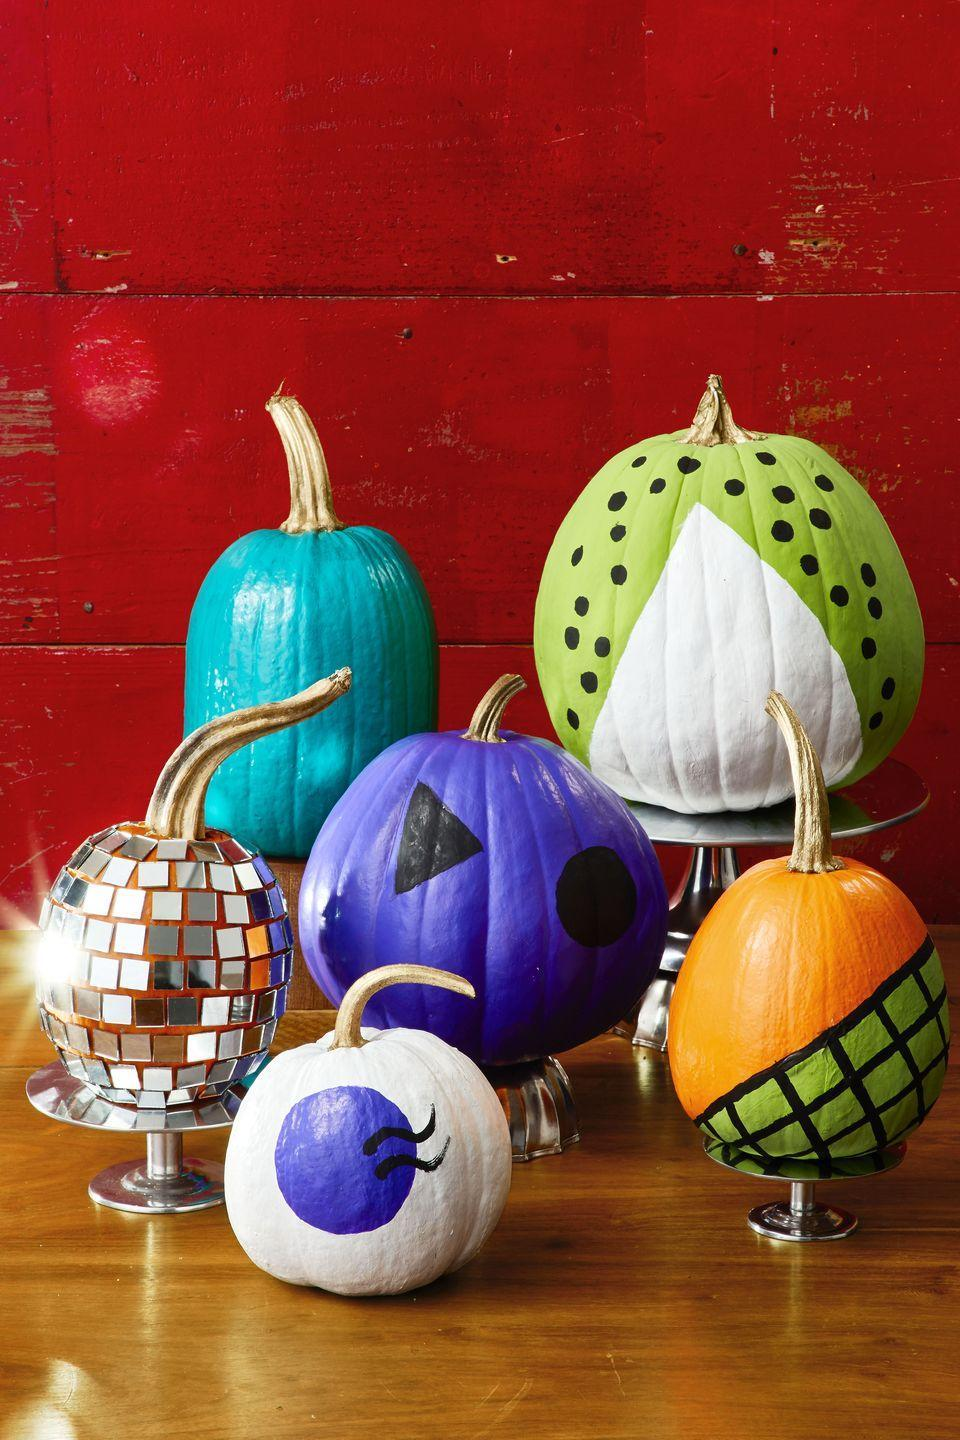 """<p>Bring back the party with these fun, retro painted pumpkins. </p><p><strong><em><a href=""""https://www.womansday.com/home/crafts-projects/a29252402/so-retro/"""" rel=""""nofollow noopener"""" target=""""_blank"""" data-ylk=""""slk:Get the So Retro Pumpkins tutorial."""" class=""""link rapid-noclick-resp"""">Get the So Retro Pumpkins tutorial.</a></em></strong></p><p><a class=""""link rapid-noclick-resp"""" href=""""https://www.amazon.com/Acrylic-Painting-Beginners-Students-Professionals/dp/B087T2G3BJ/?tag=syn-yahoo-20&ascsubtag=%5Bartid%7C10070.g.331%5Bsrc%7Cyahoo-us"""" rel=""""nofollow noopener"""" target=""""_blank"""" data-ylk=""""slk:SHOP ACRYLIC PAINT"""">SHOP ACRYLIC PAINT</a> </p>"""